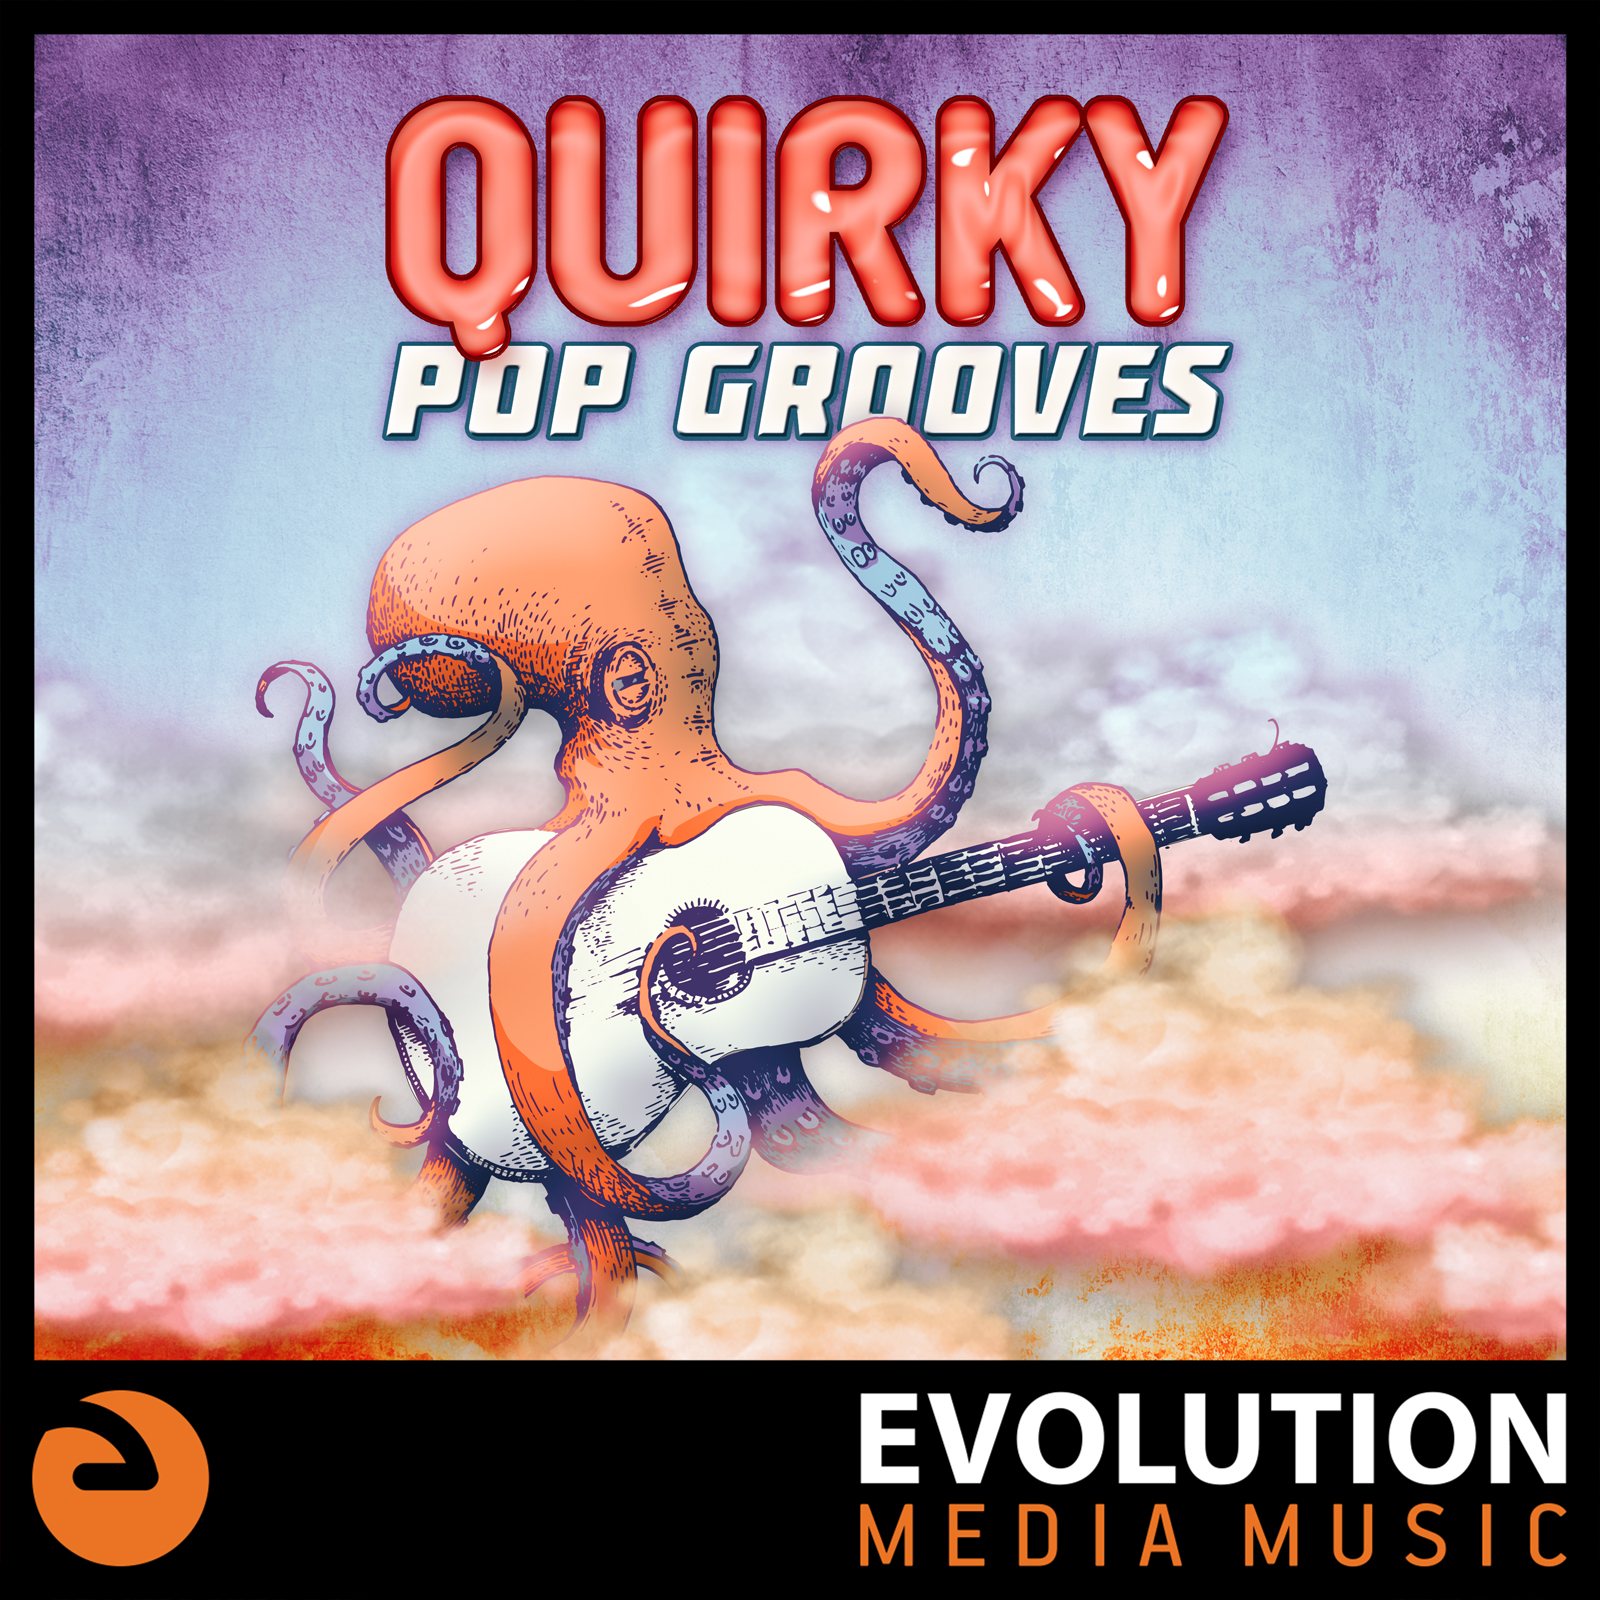 Quirky Pop Grooves